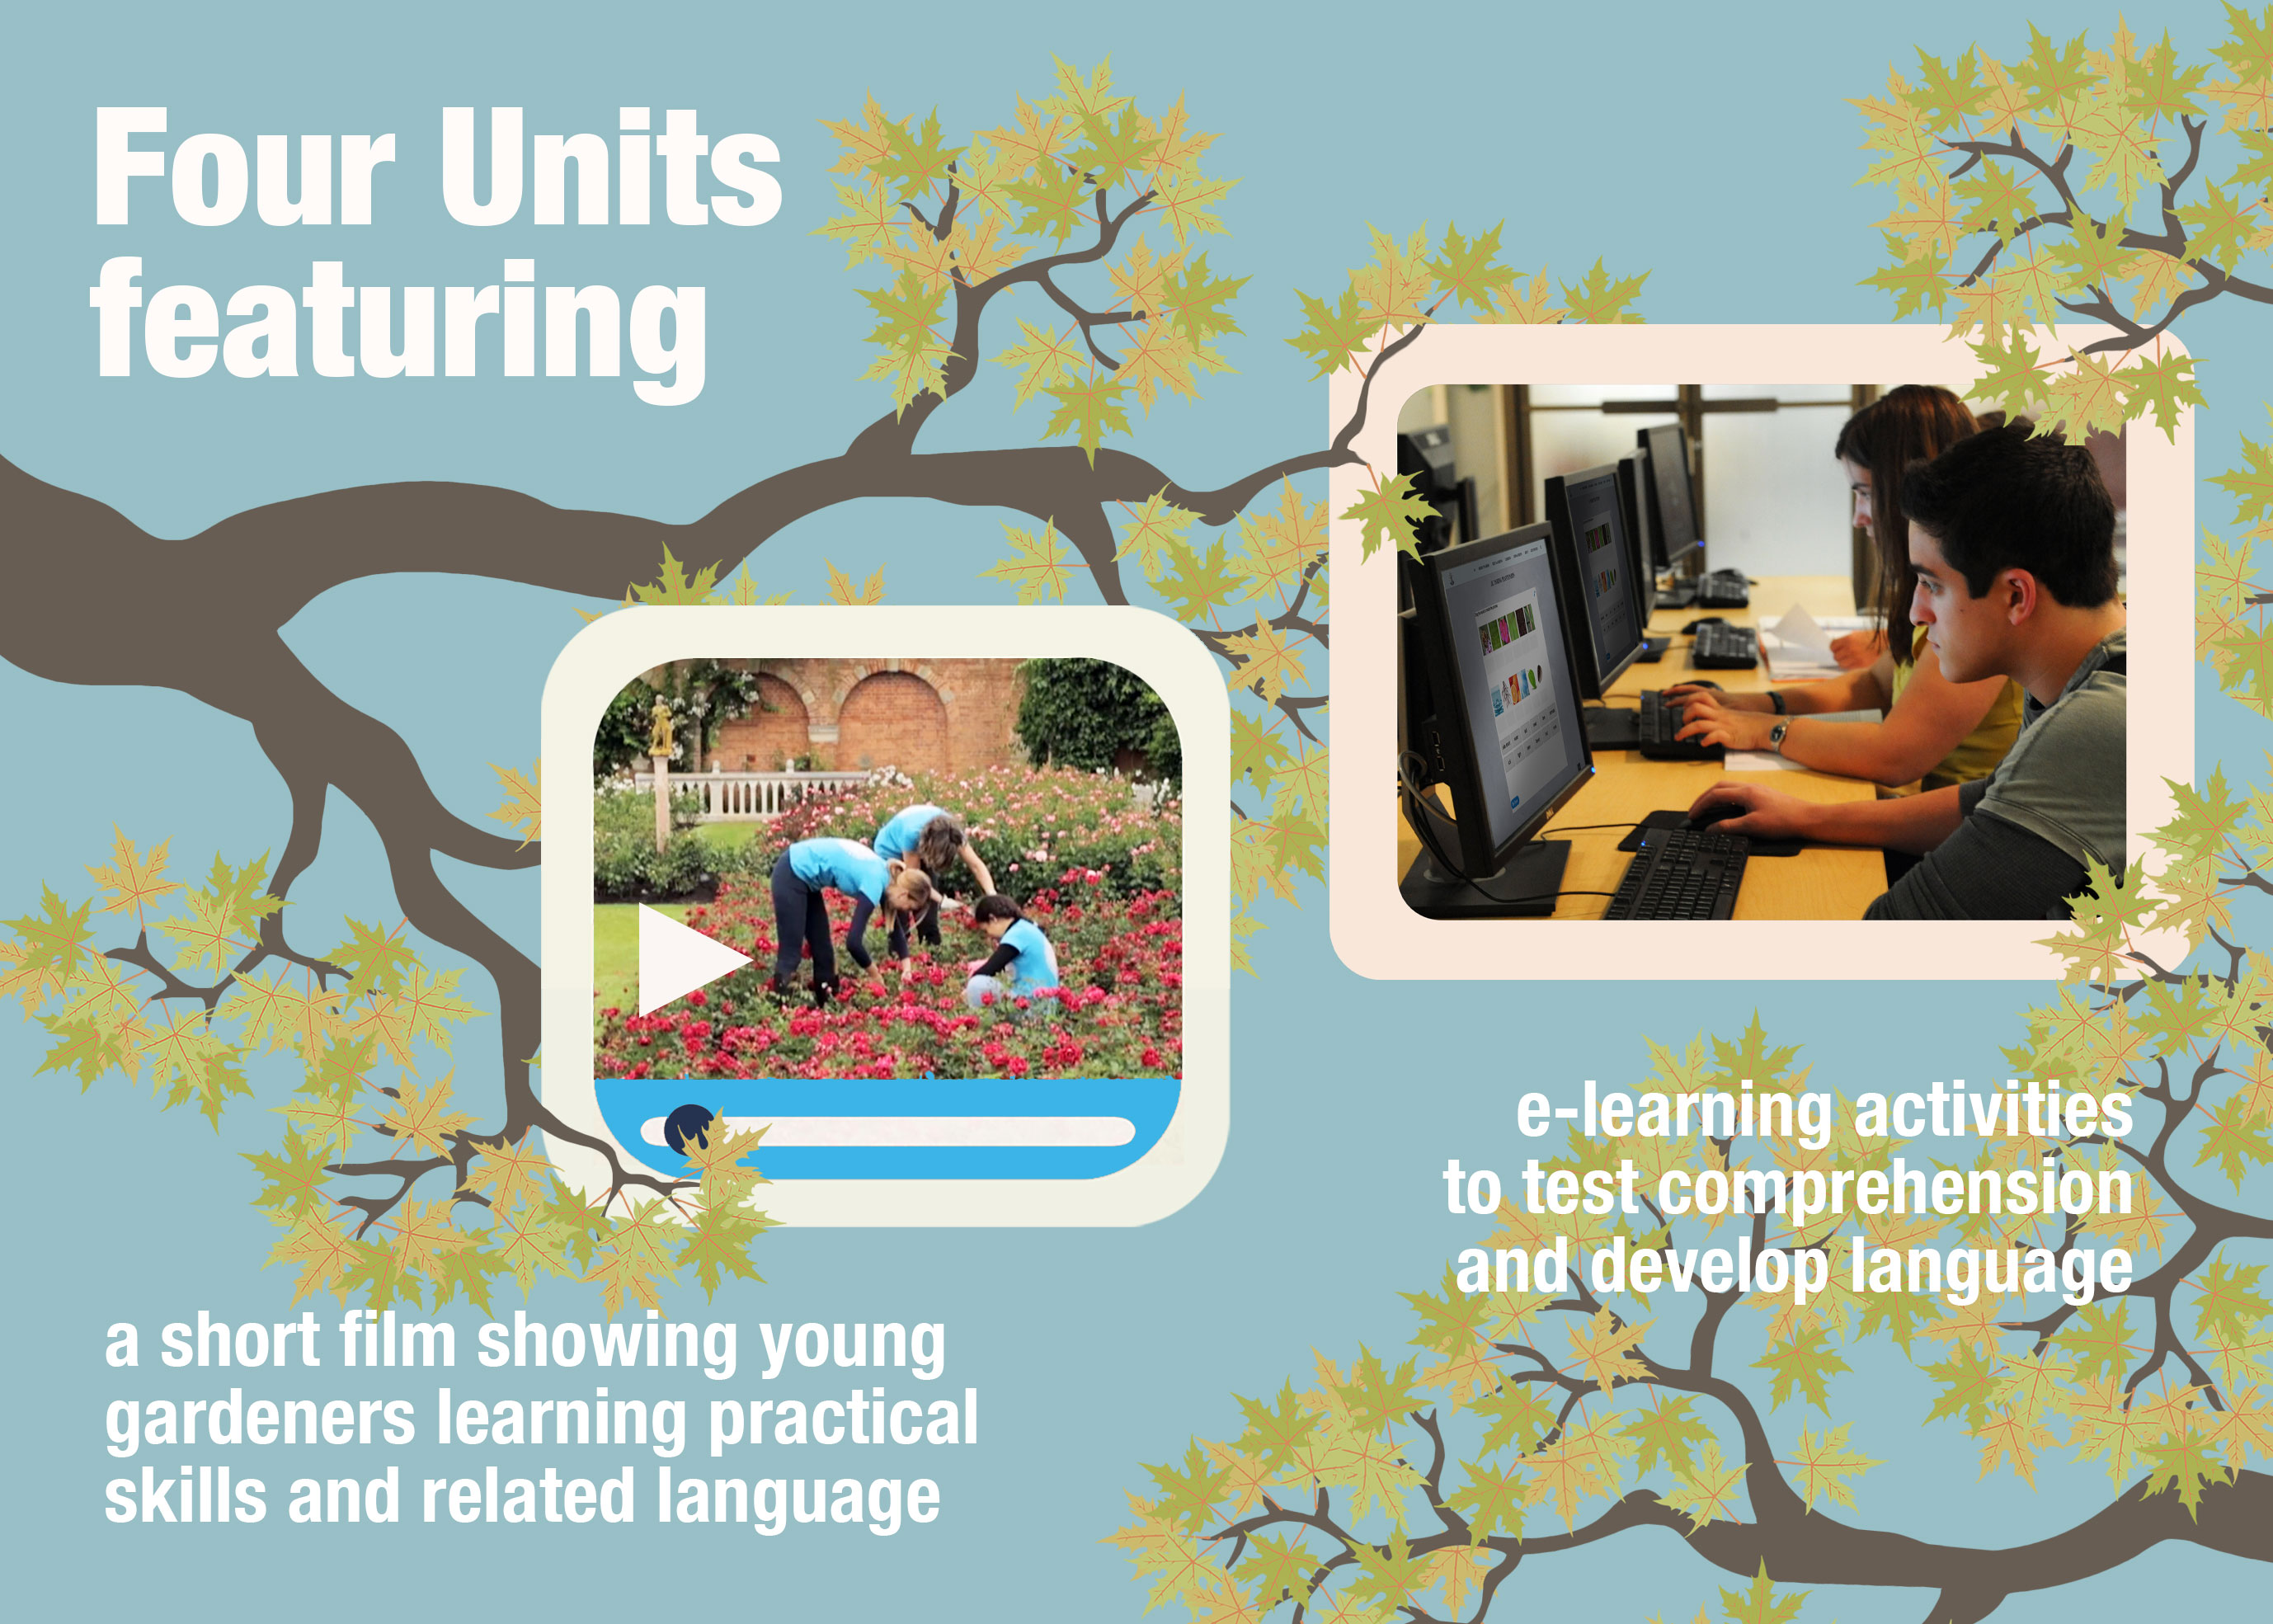 ETG - Four units featuring film and e-learning activities